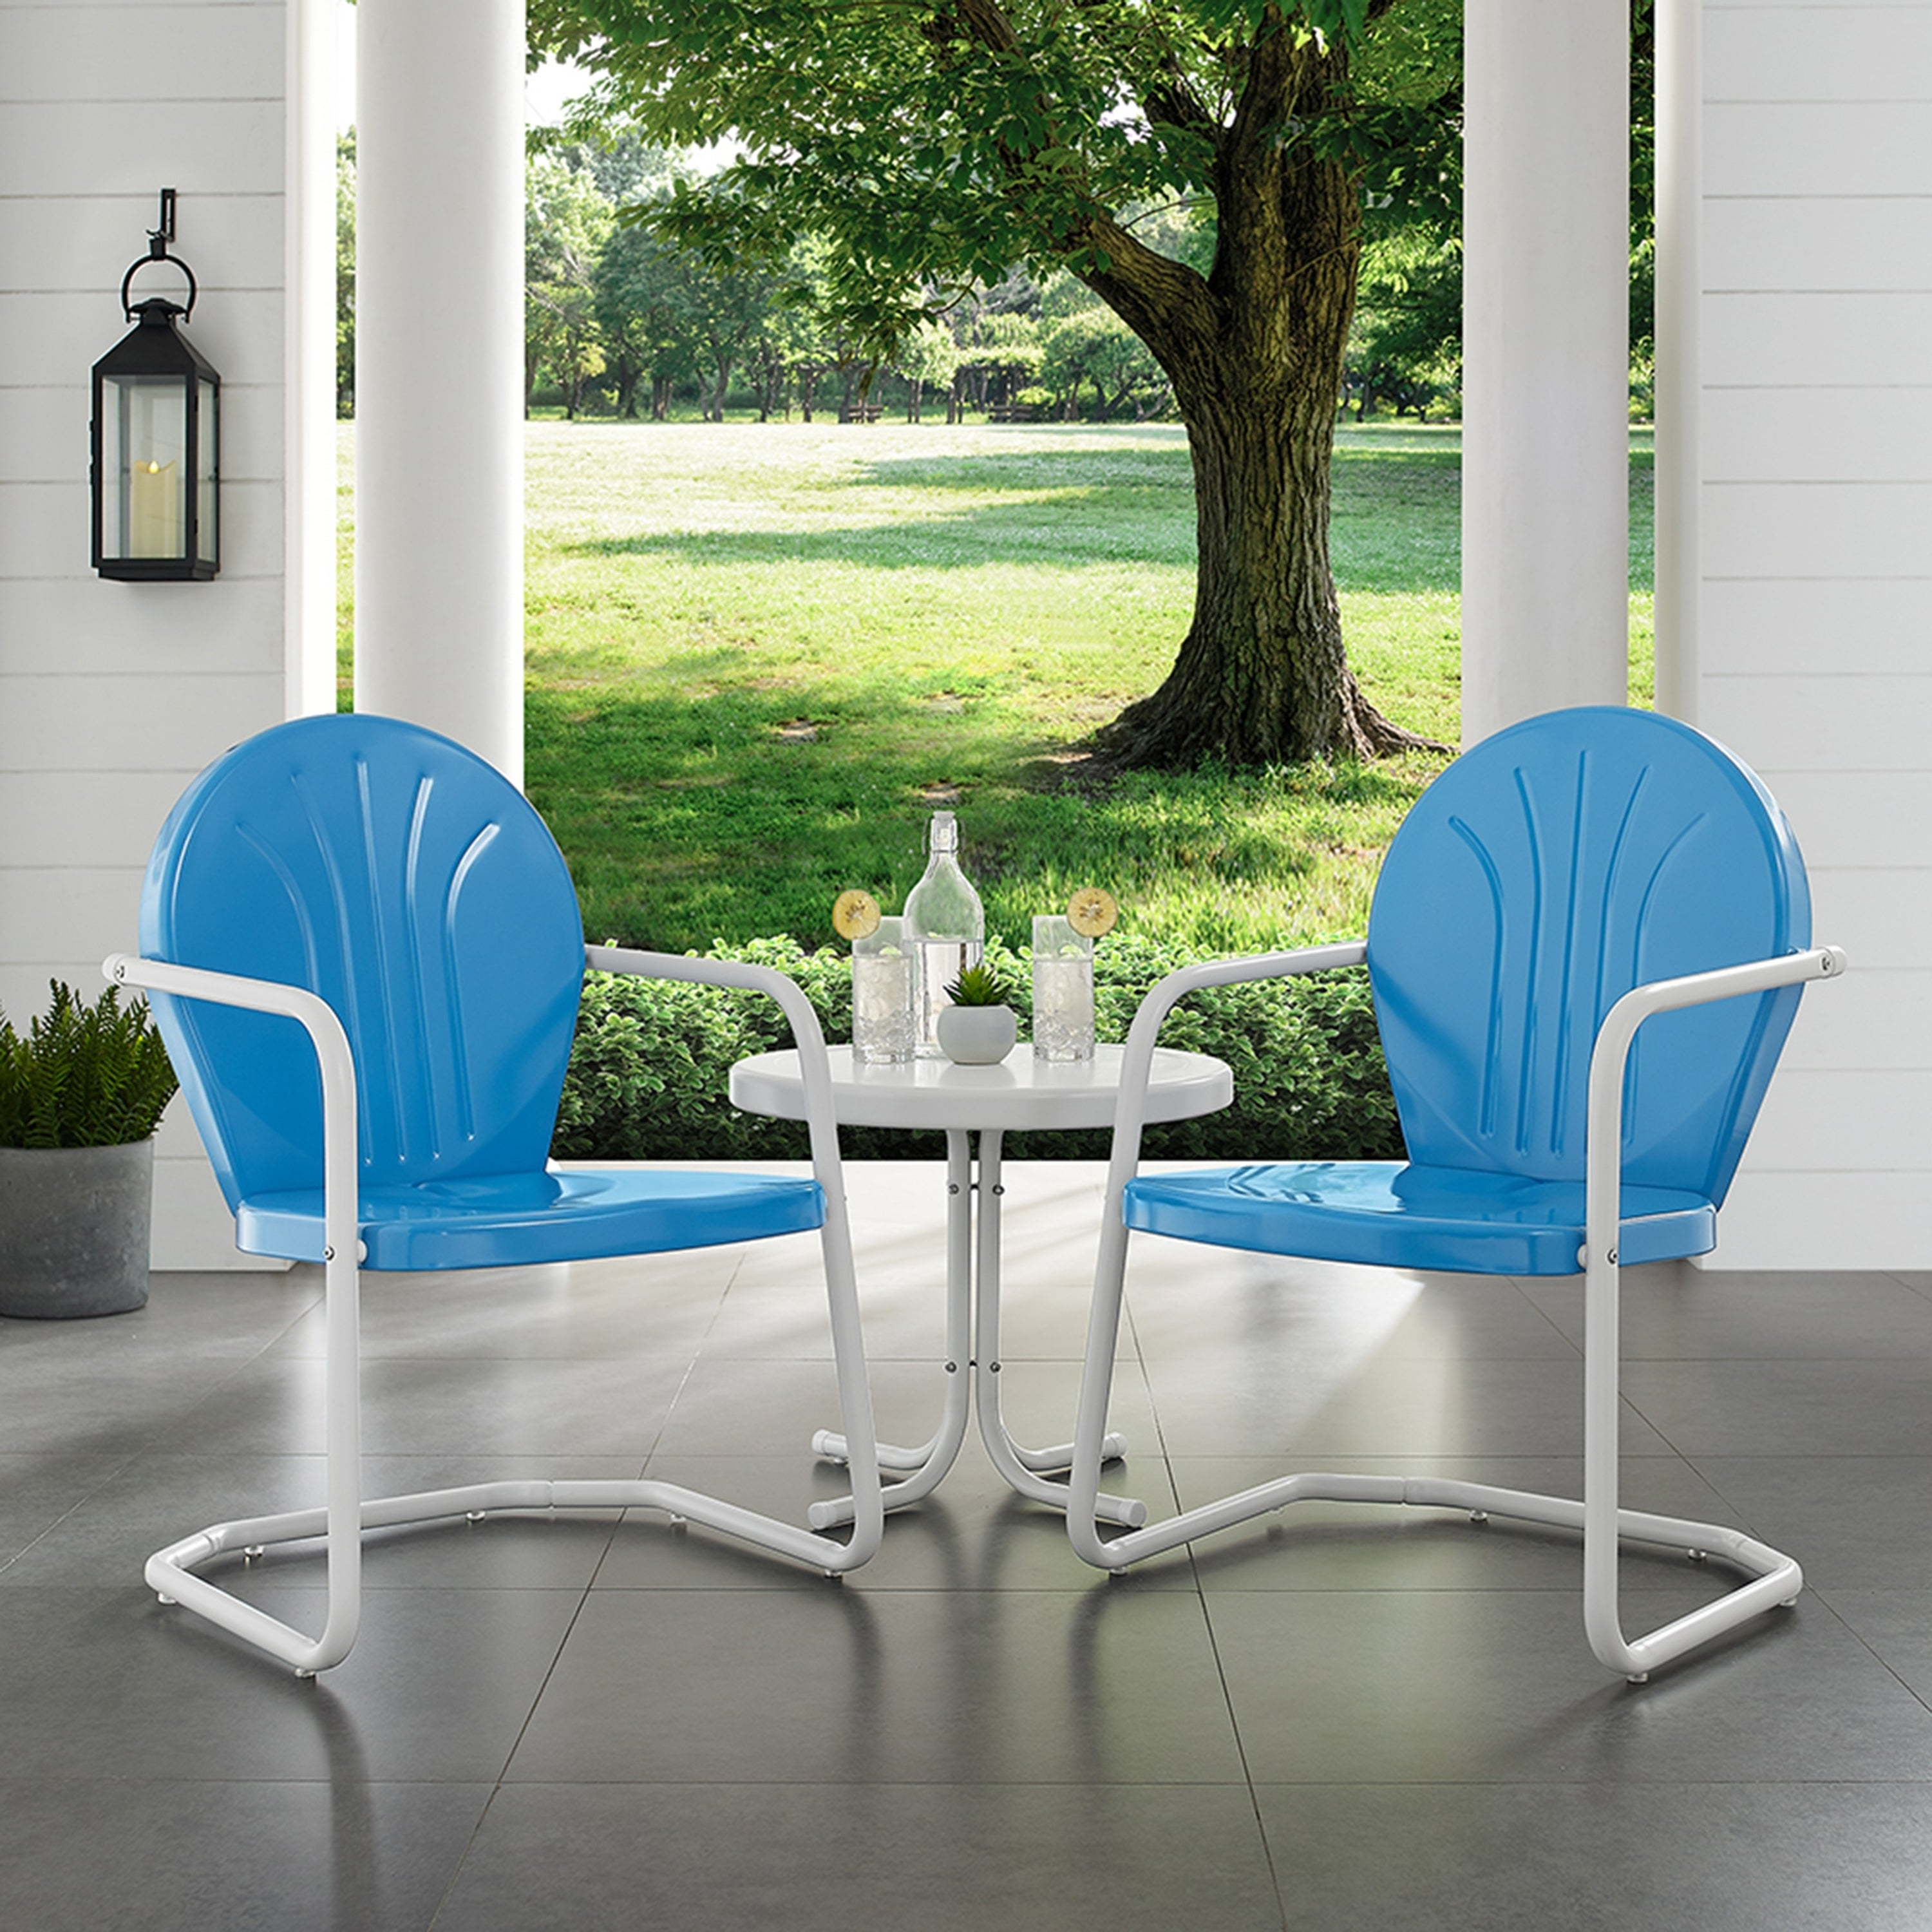 Find Great Outdoor Seating & Dining Deals (View 12 of 20)